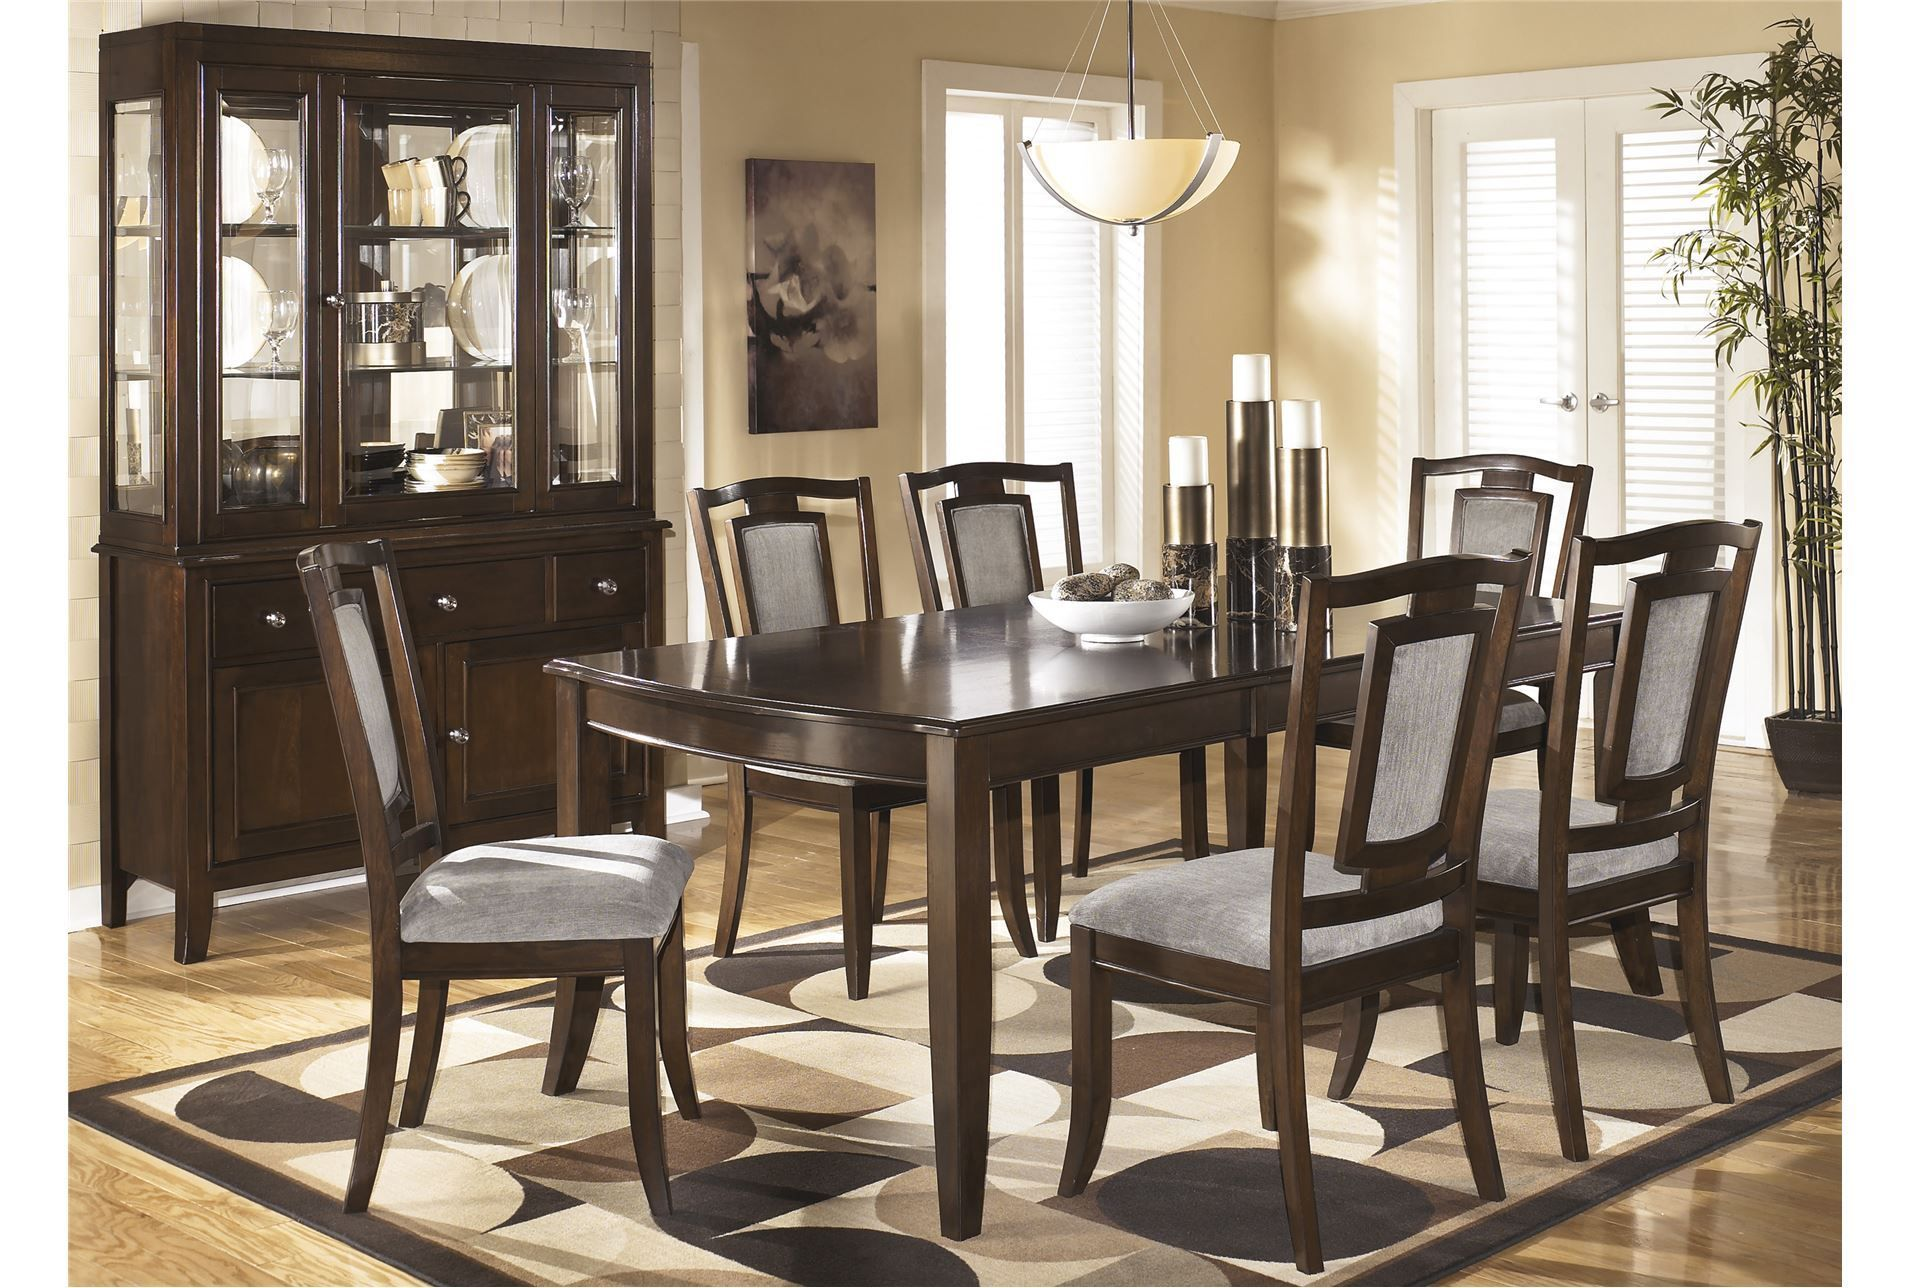 Best Martini Studio 7 Piece Dining Set Dining Room Tables 400 x 300